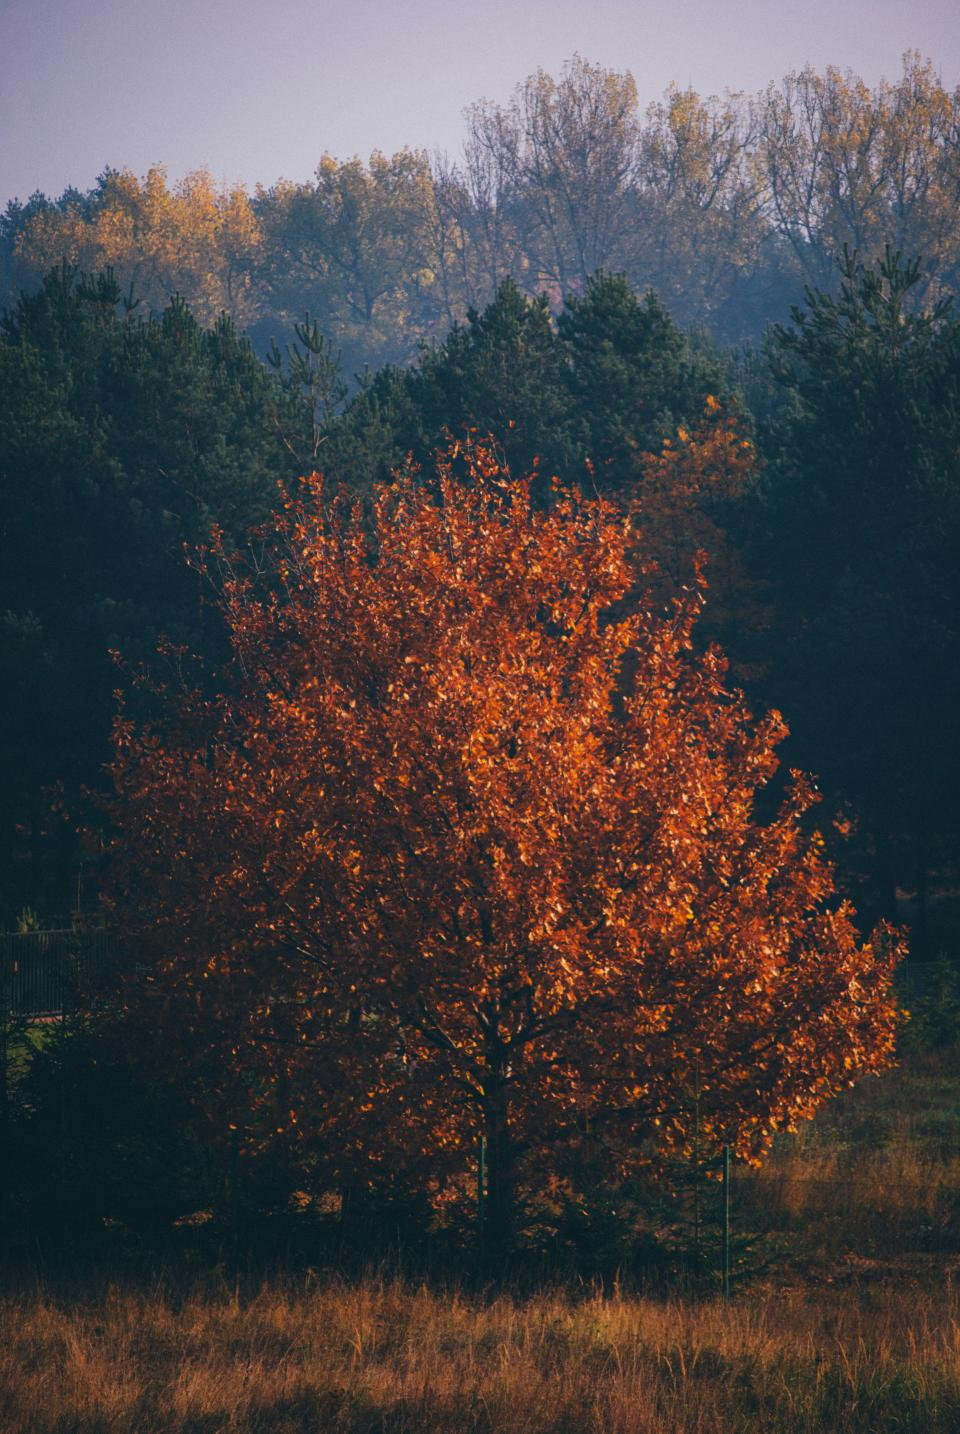 trees, forest, woods, grass, nature, fall, autumn